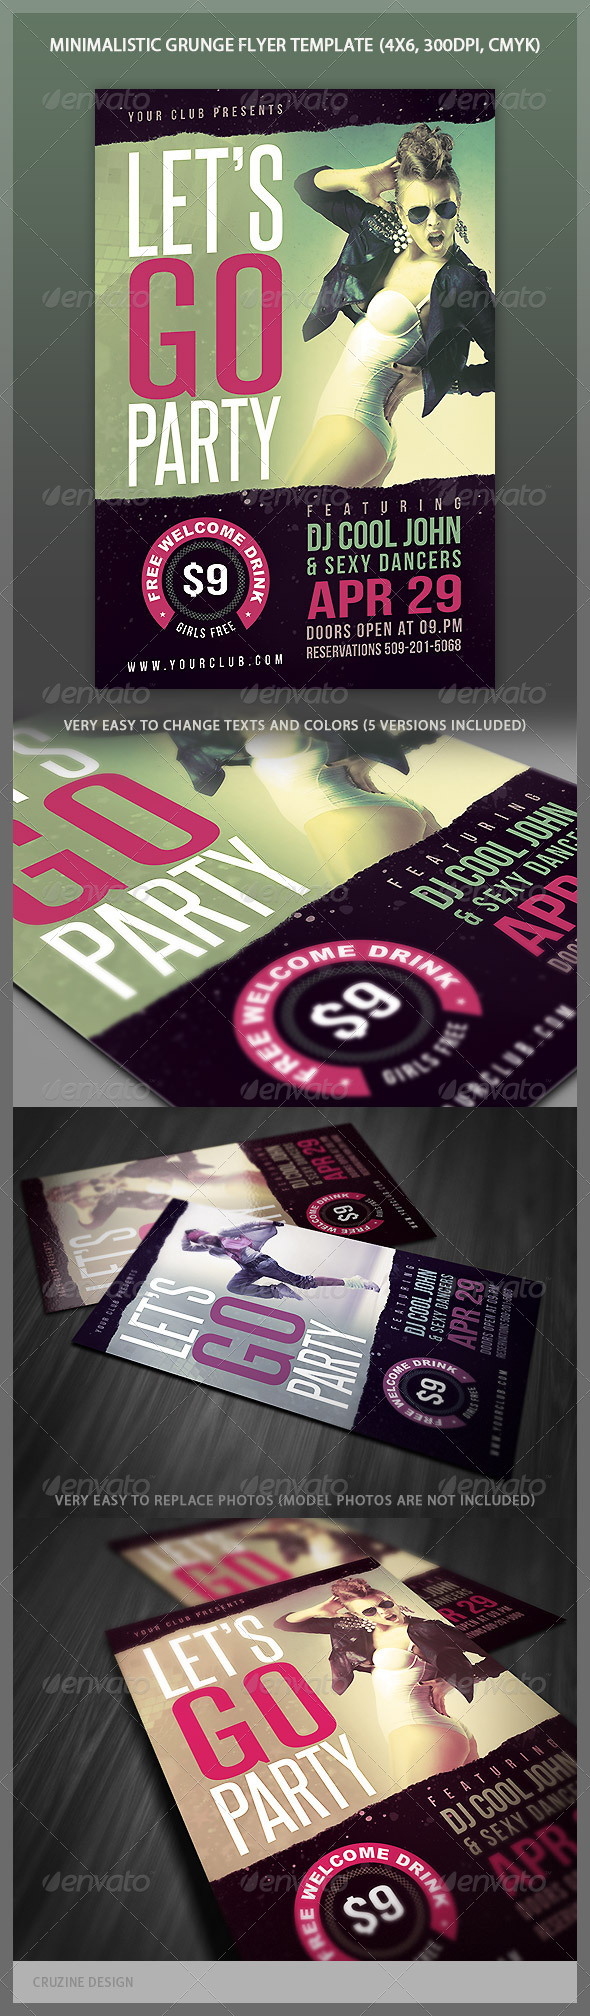 GraphicRiver Minimalistic Grunge Party Flyer 5241018